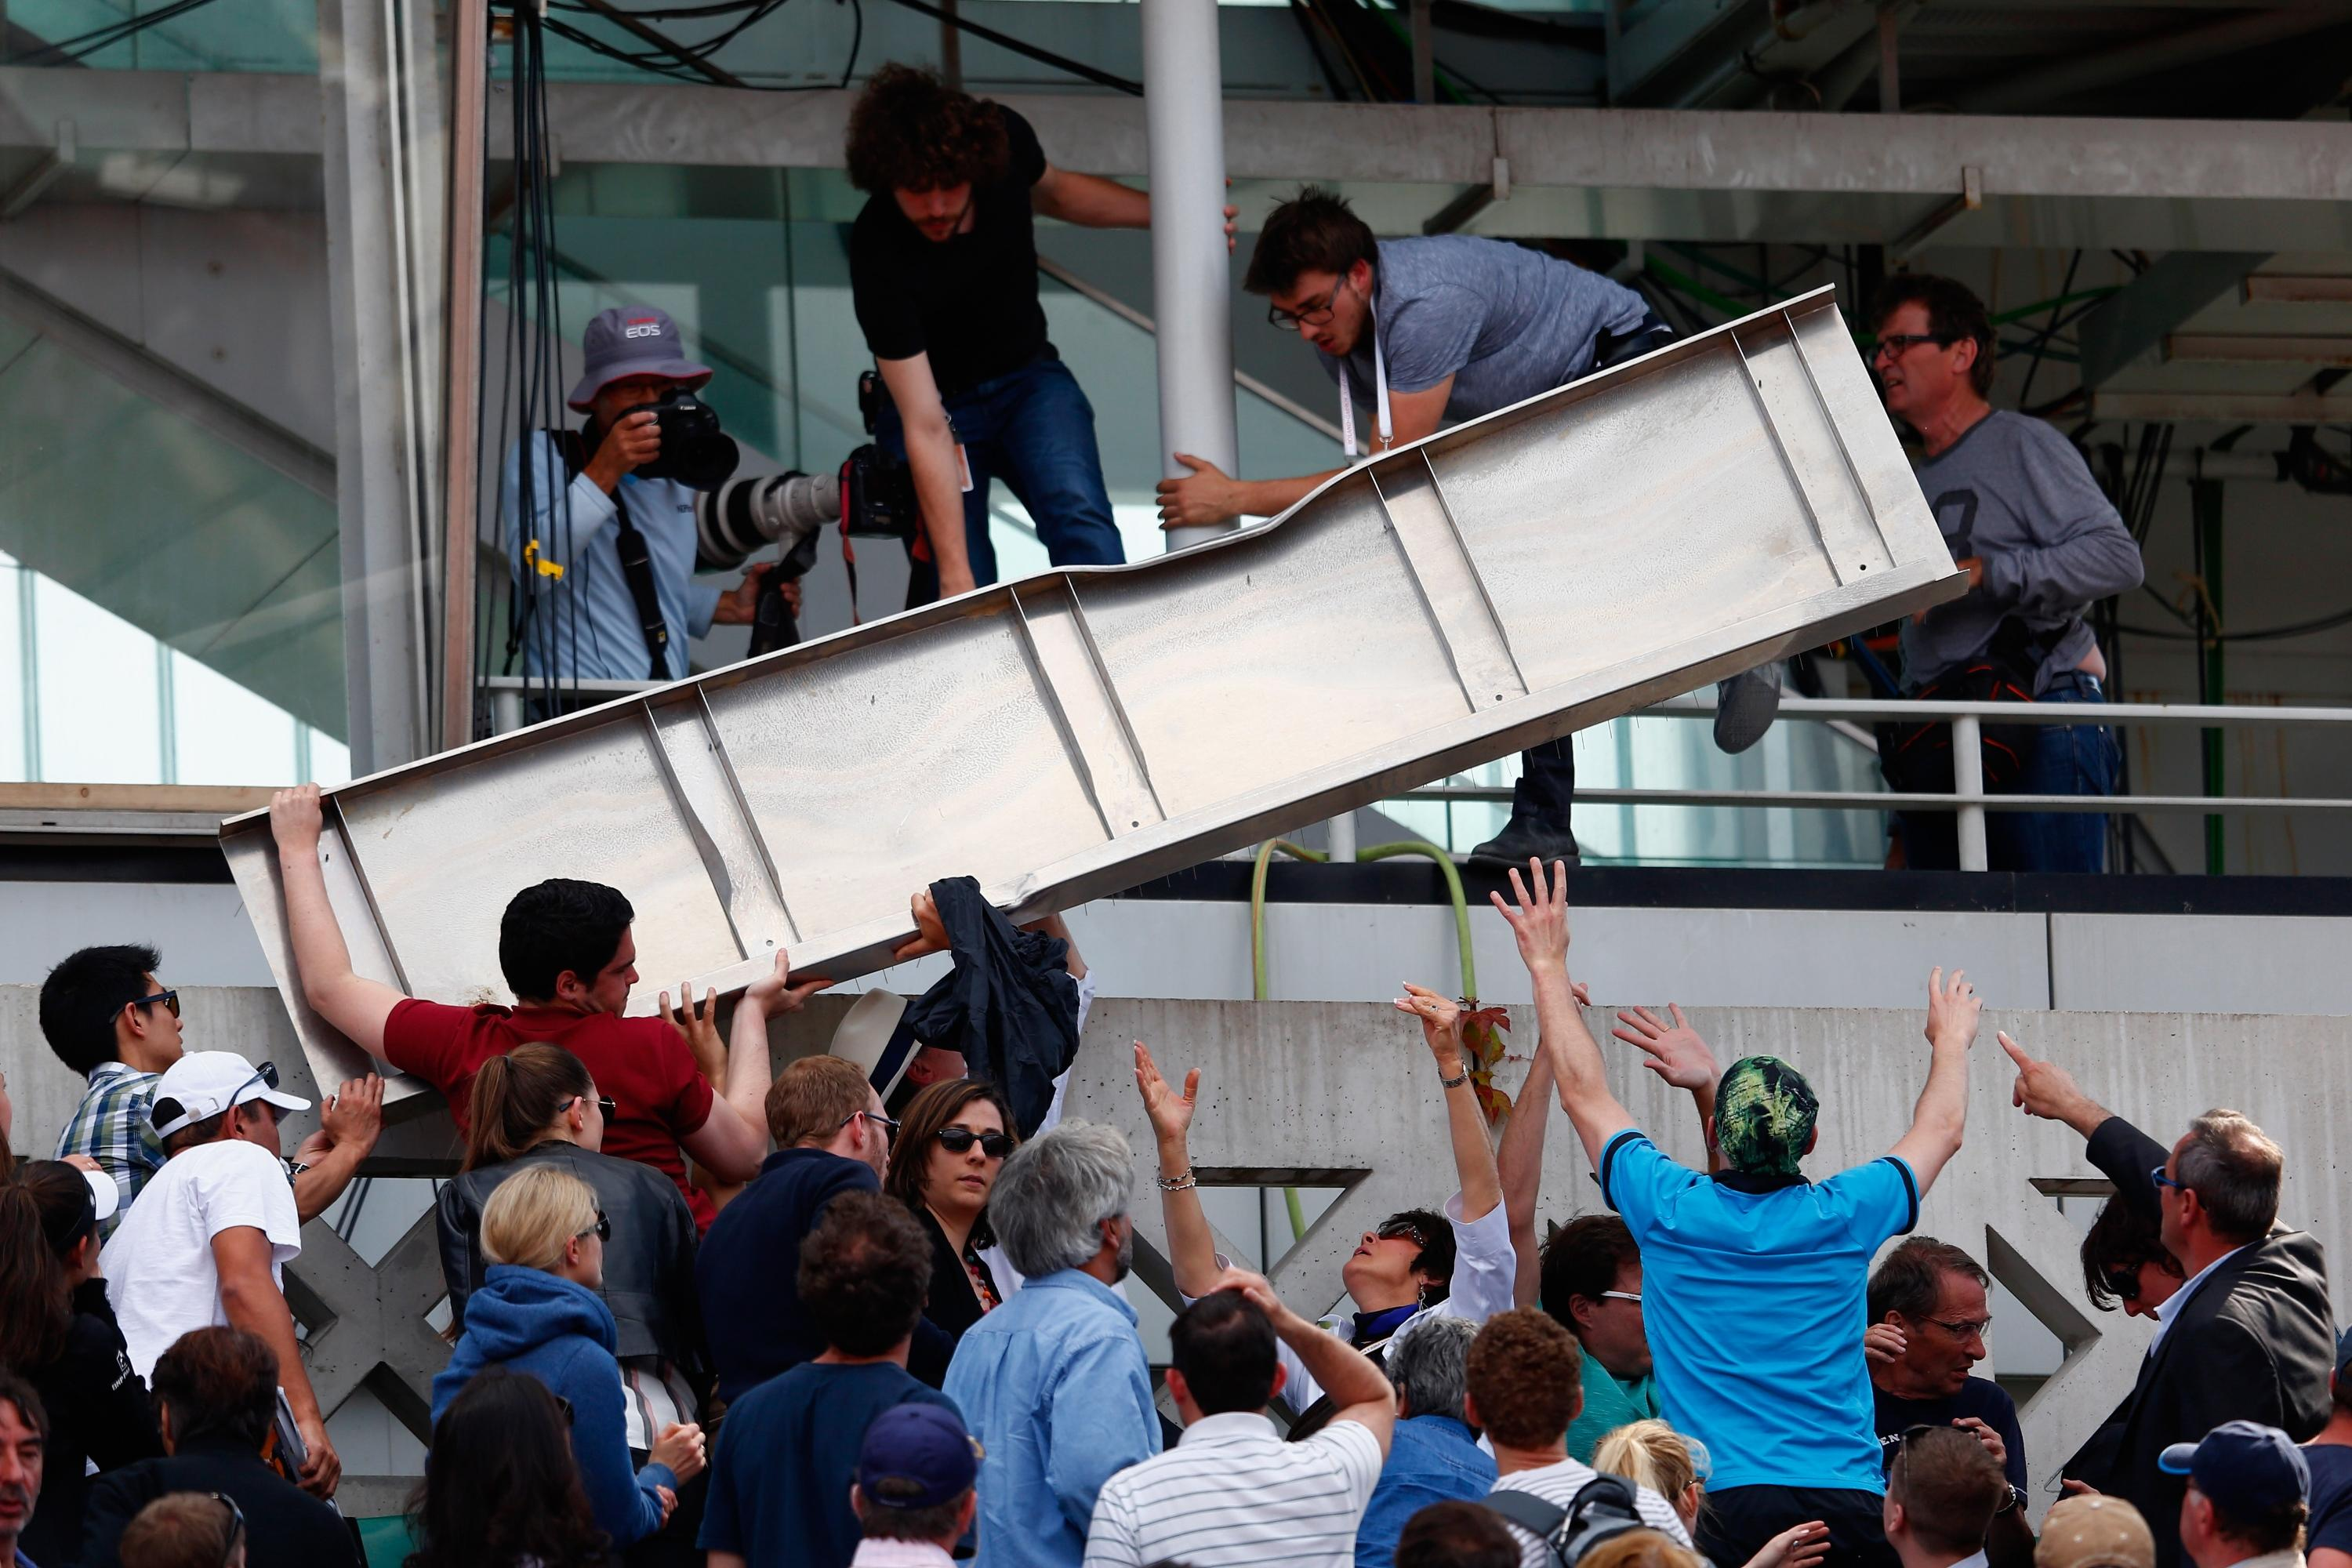 French Open match halted as spectators injured